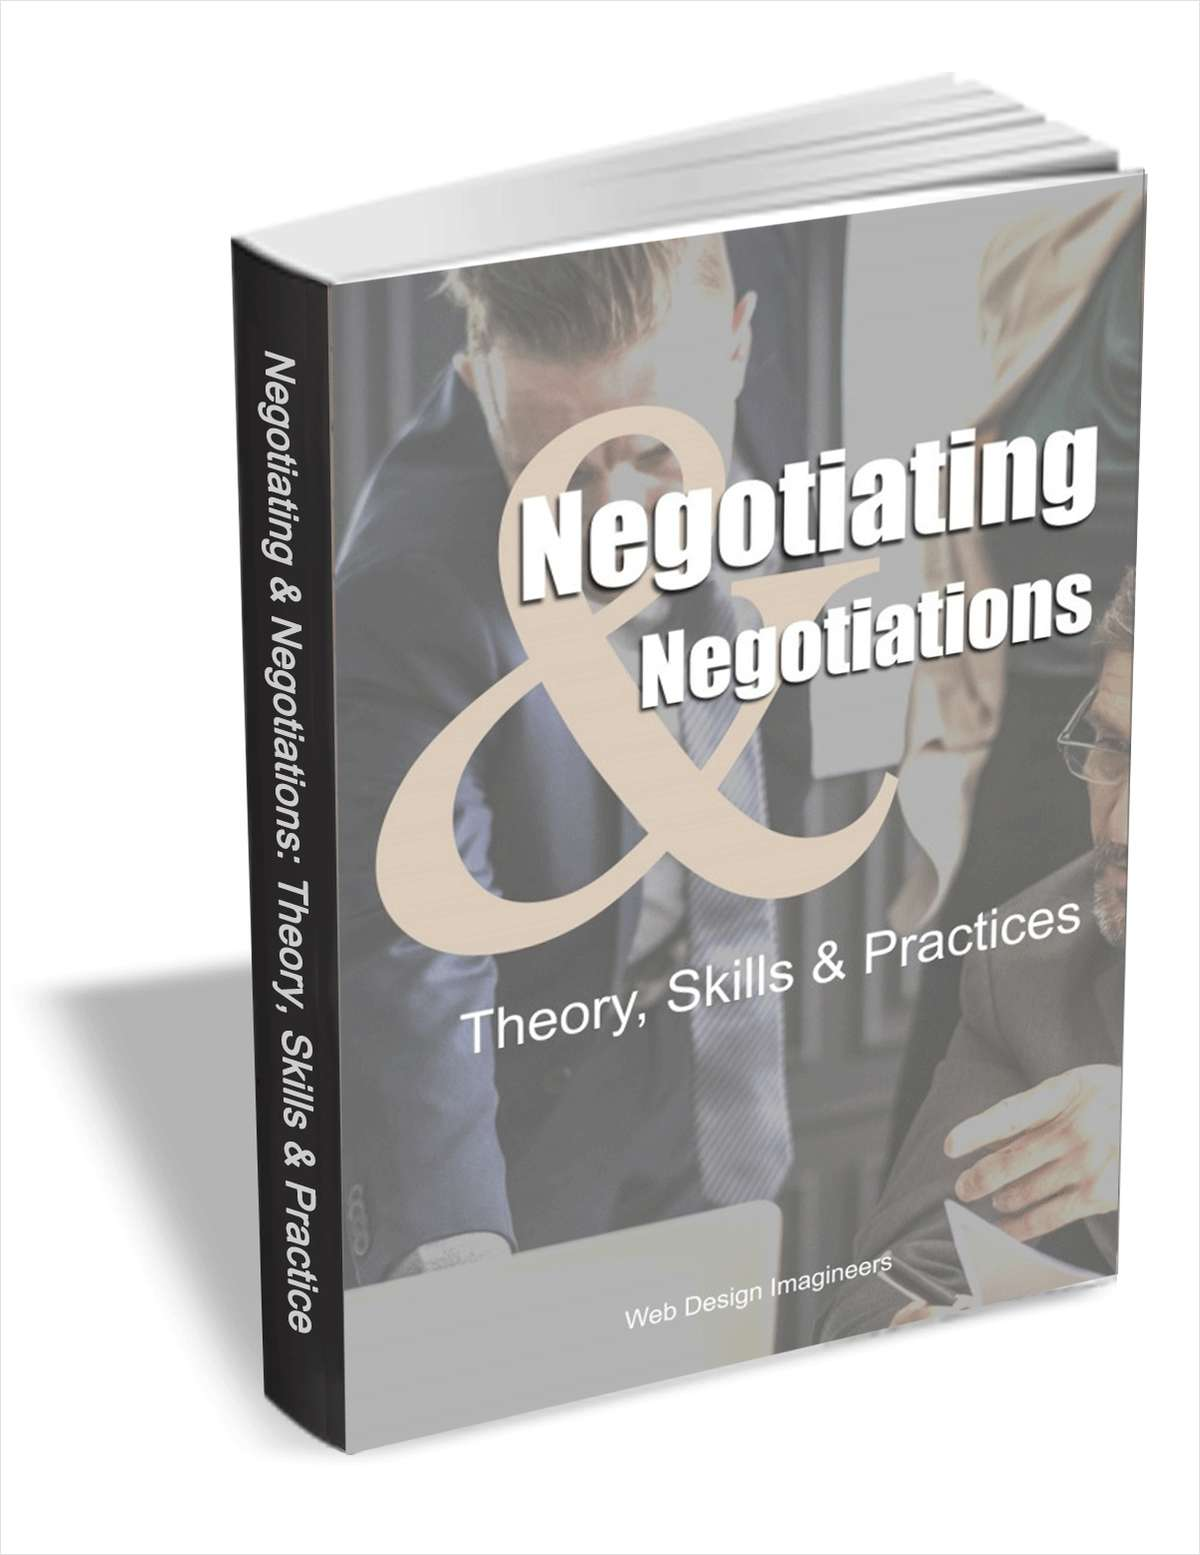 Negotiating & Negotiations - Theory, Skills & Practices